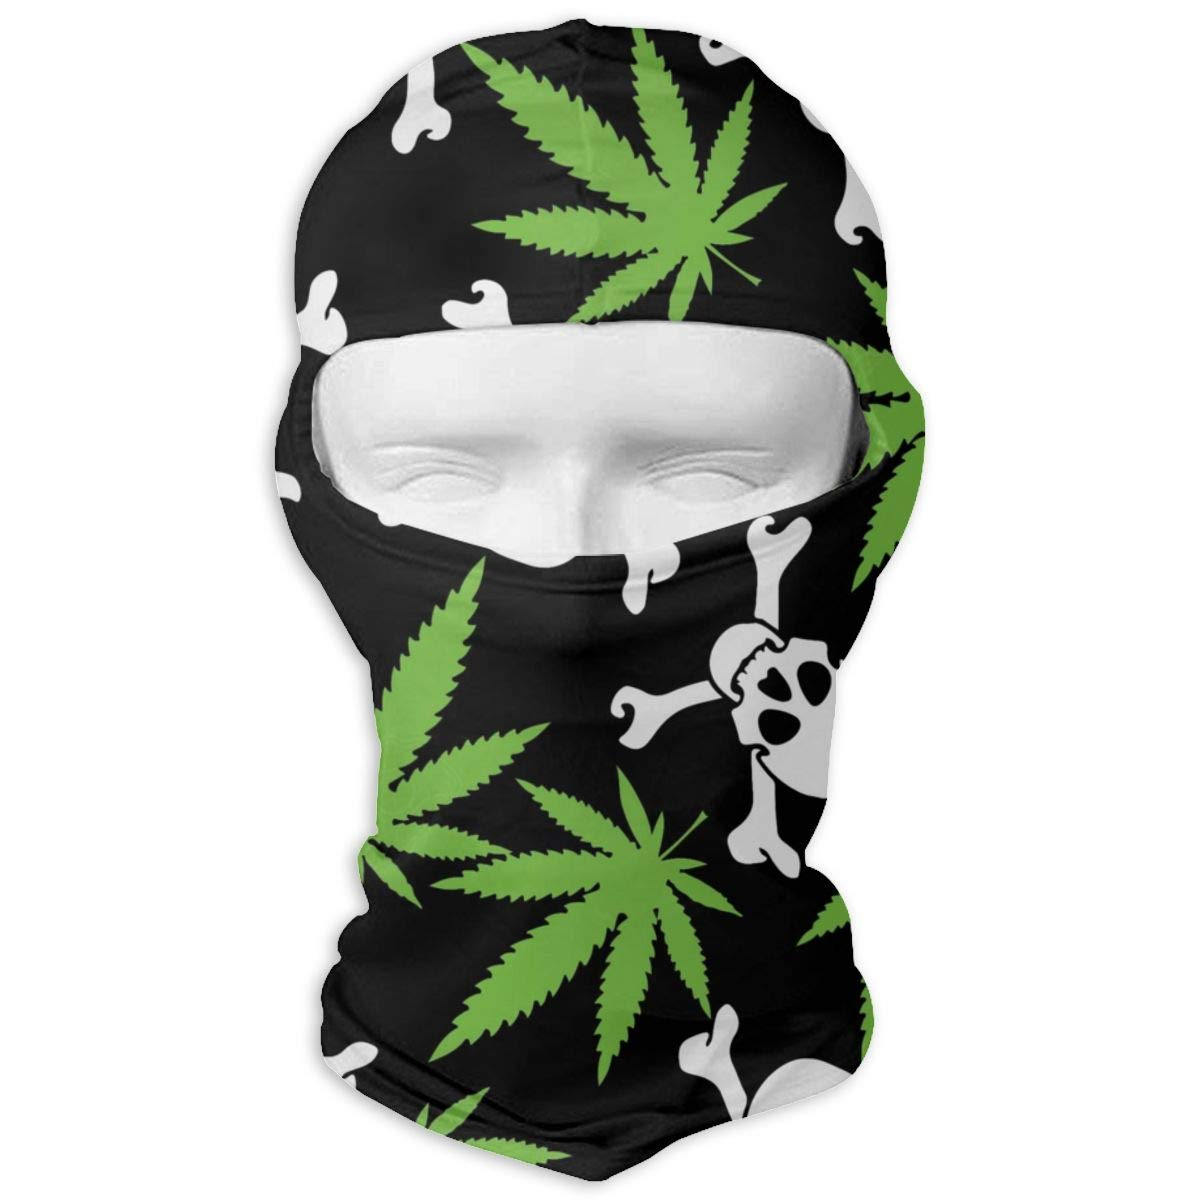 Winter Women Mens Balaclava Face Mask - Wind-Resistant Thermal Skullies Beanies Headwear Polyester Neck Warmer for Motorcycle Outdoors Hunting, Marijuana Weed Skull Crossbones Black